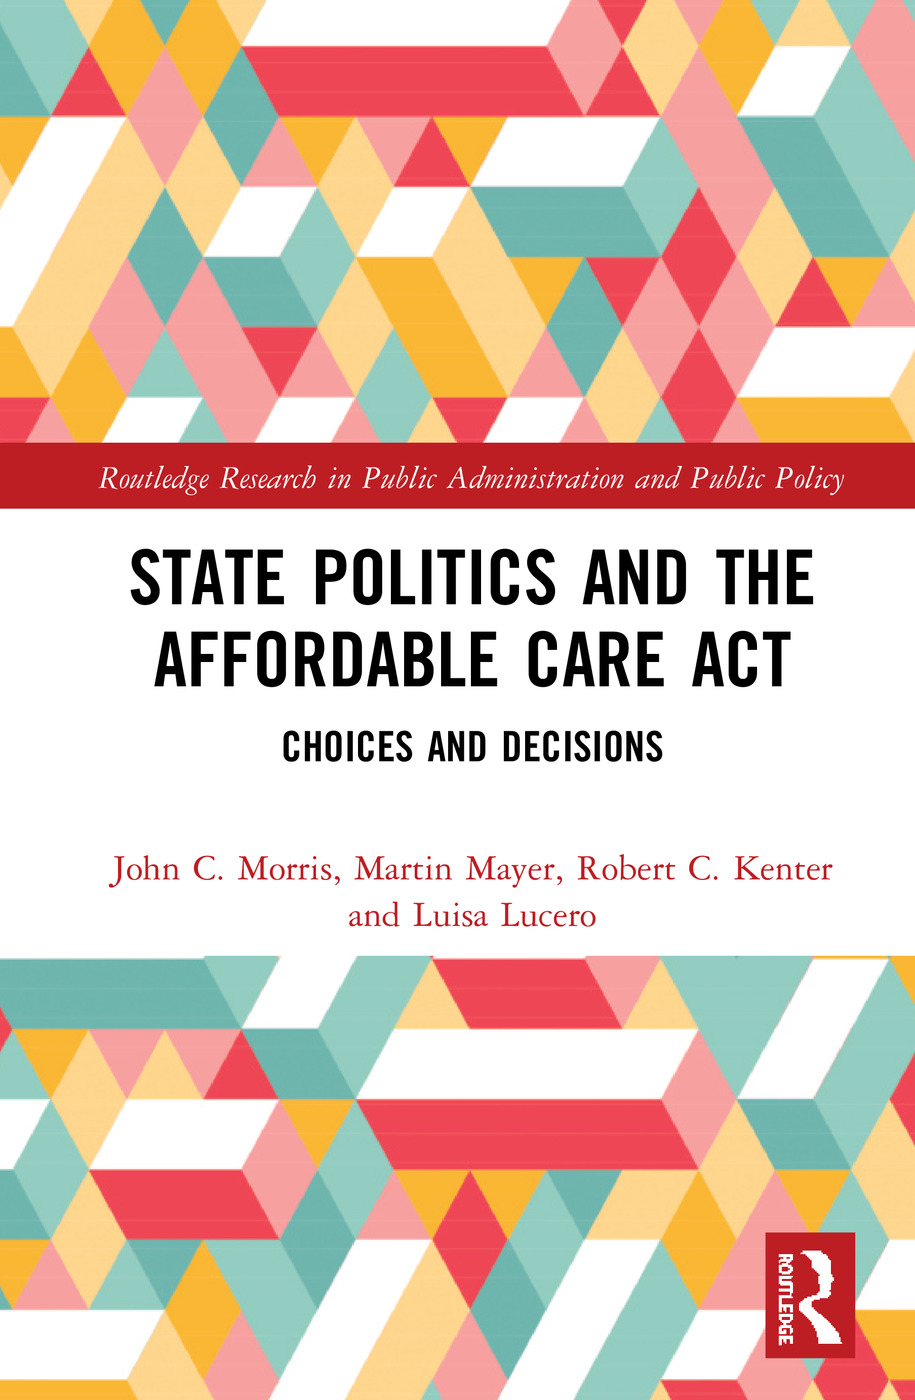 State Politics and the Affordable Care Act: Choices and Decisions book cover